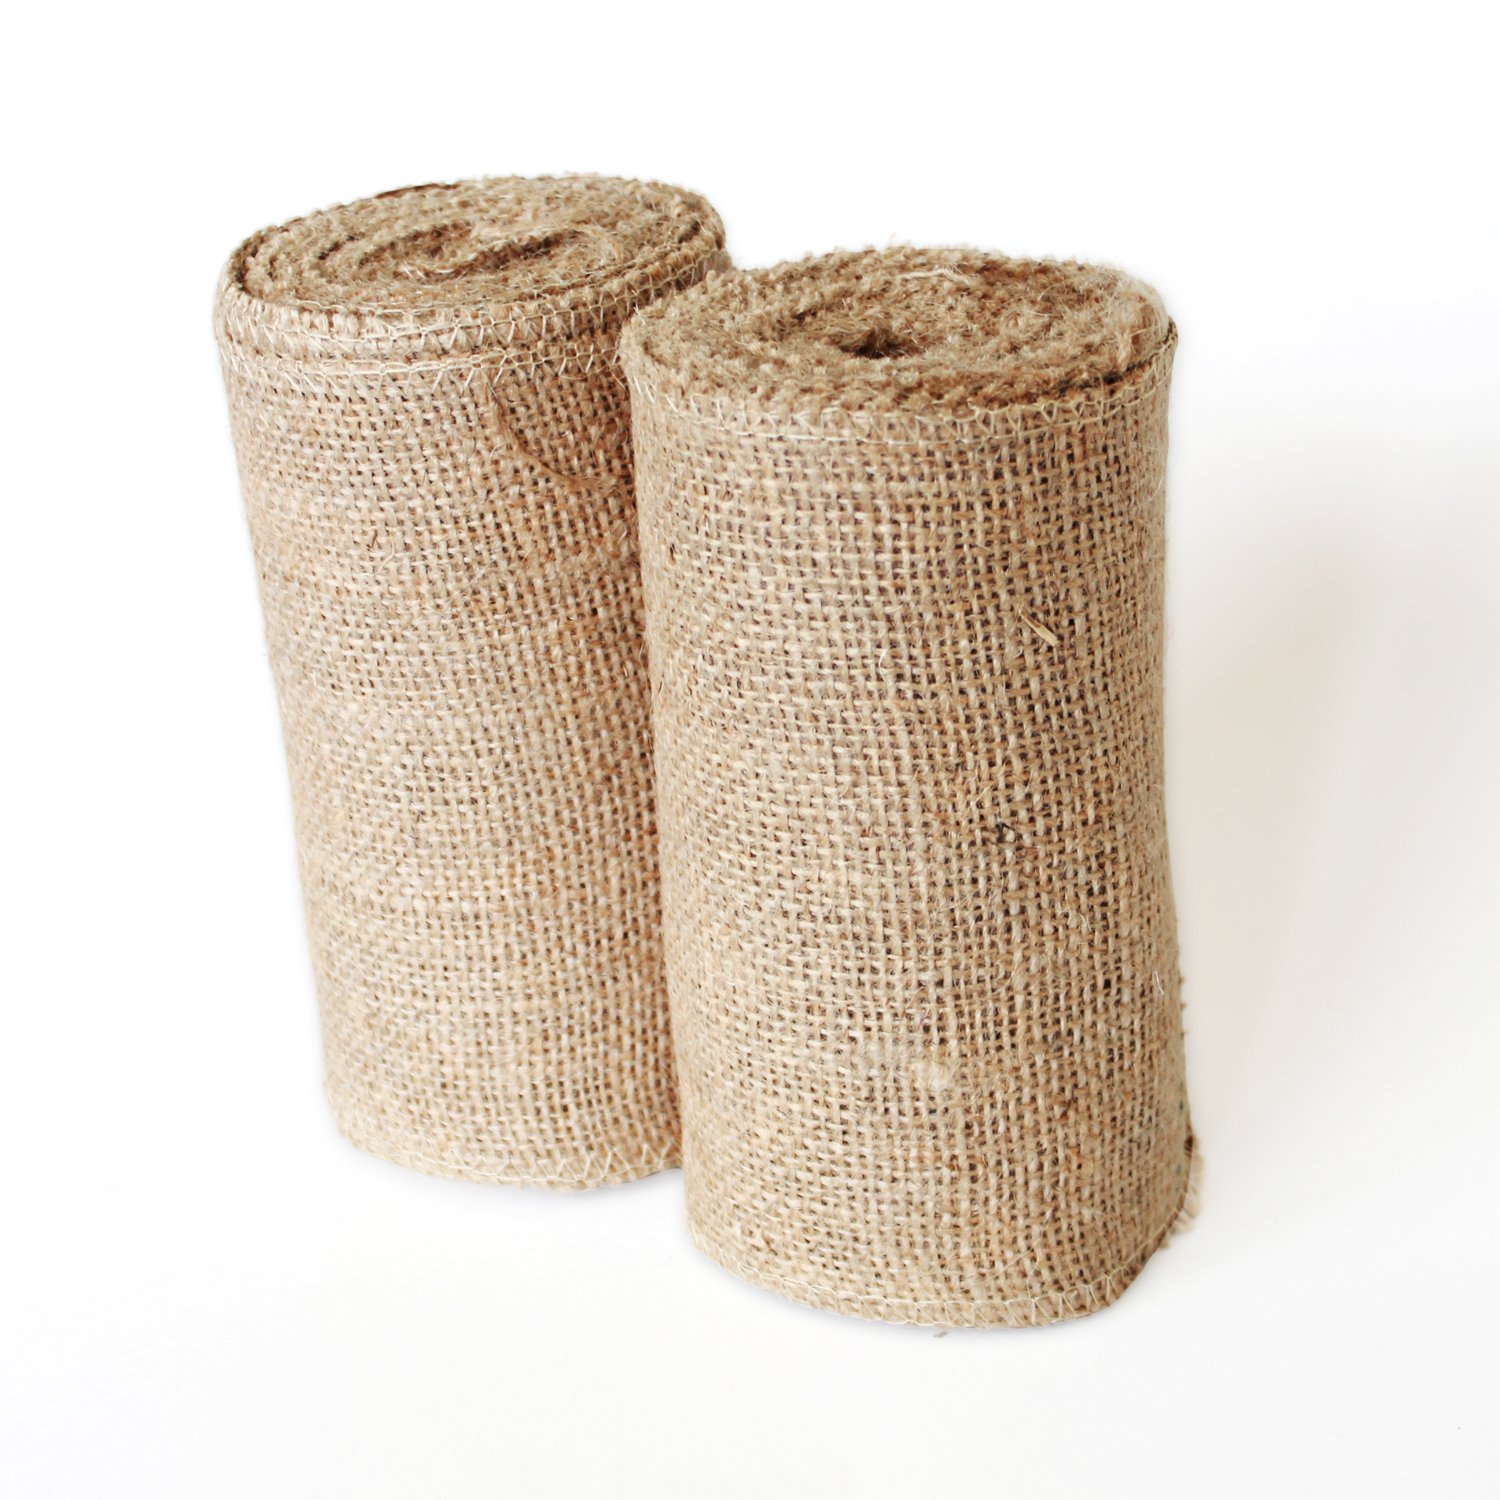 Craft Burlap Ribbon No Fray Edges 6 Inches by 10 Yards 2 Pack Wreath Ribbon